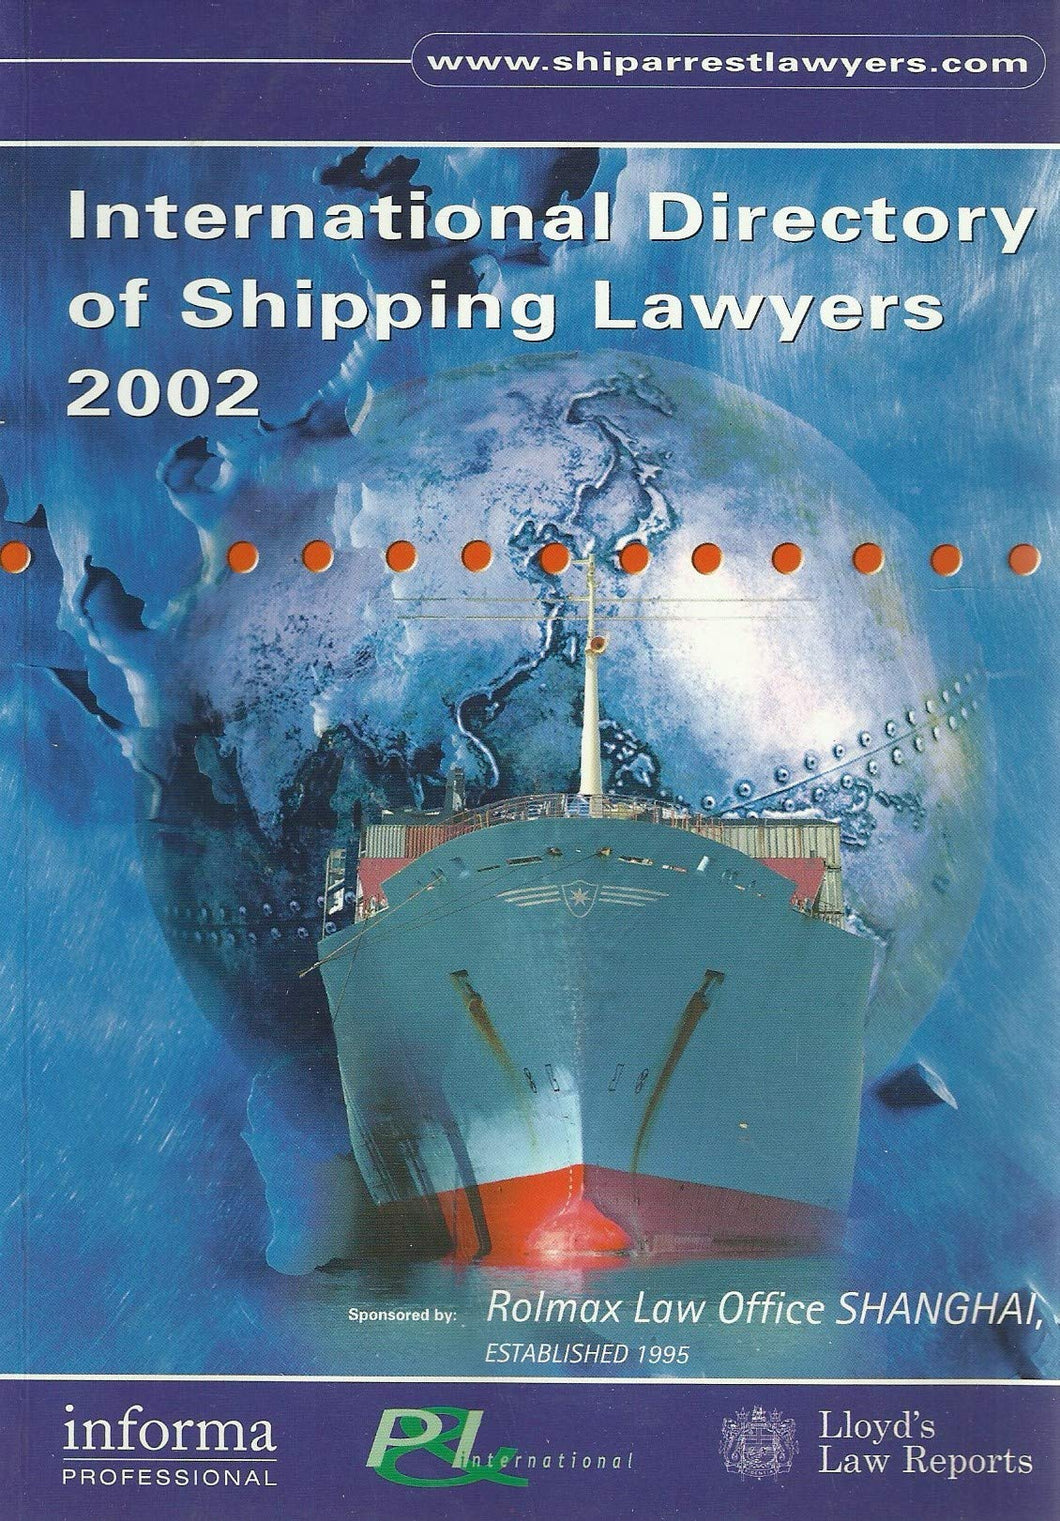 International Directory of Shipping Lawyers: 2002